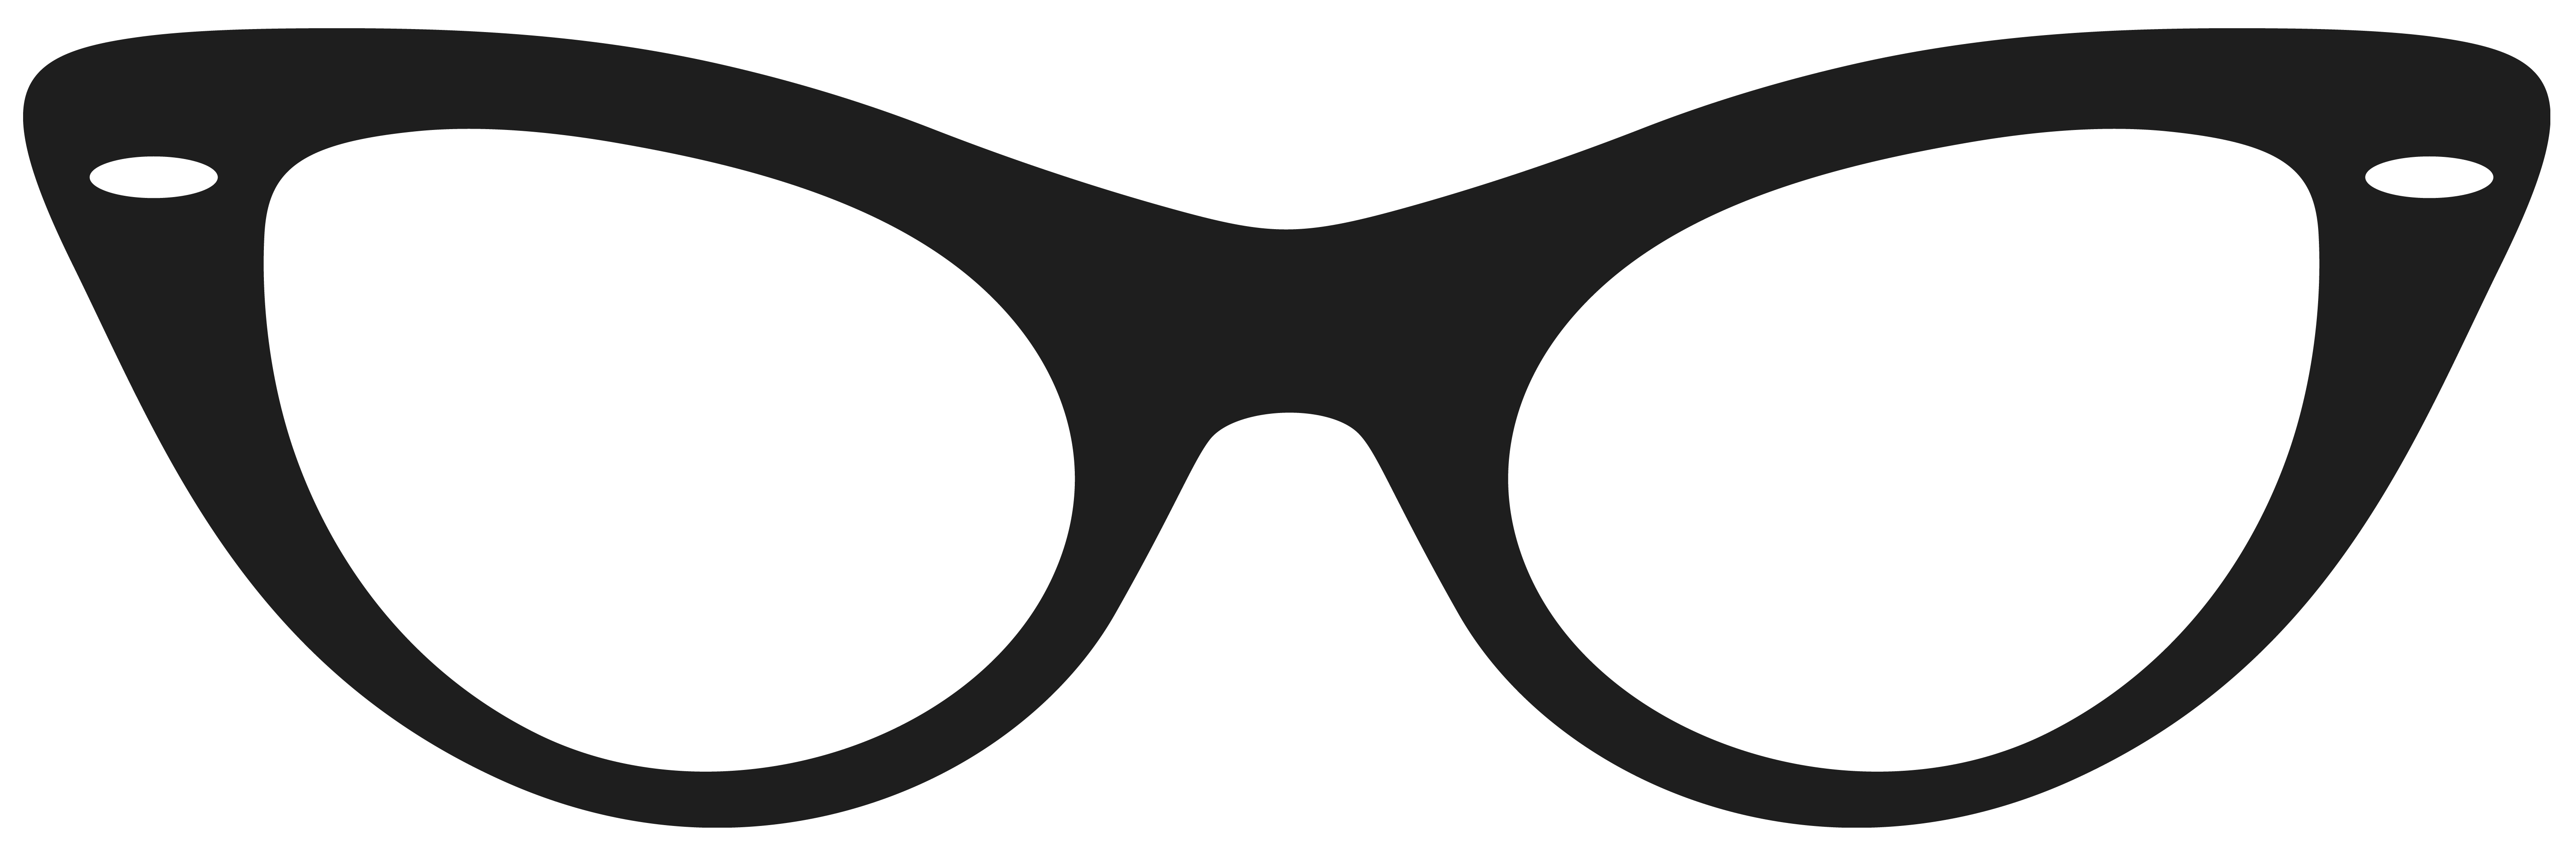 clip art black and white download Glasses png images free. Goggles clipart spectacles frame